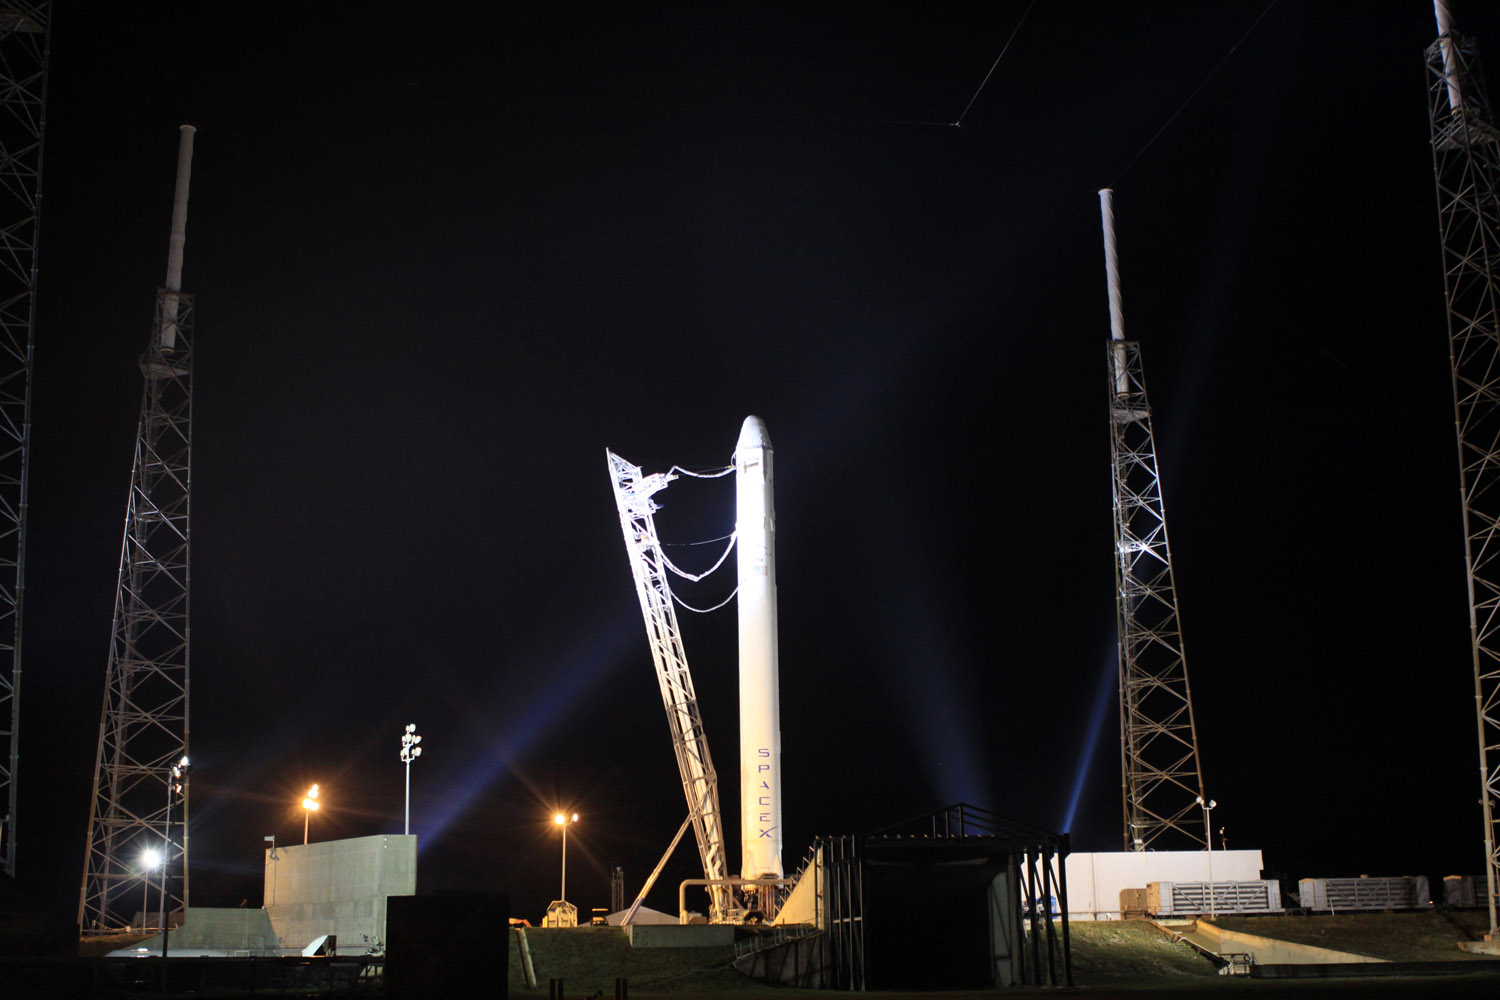 5 Fun Facts About Private Rocket Company SpaceX